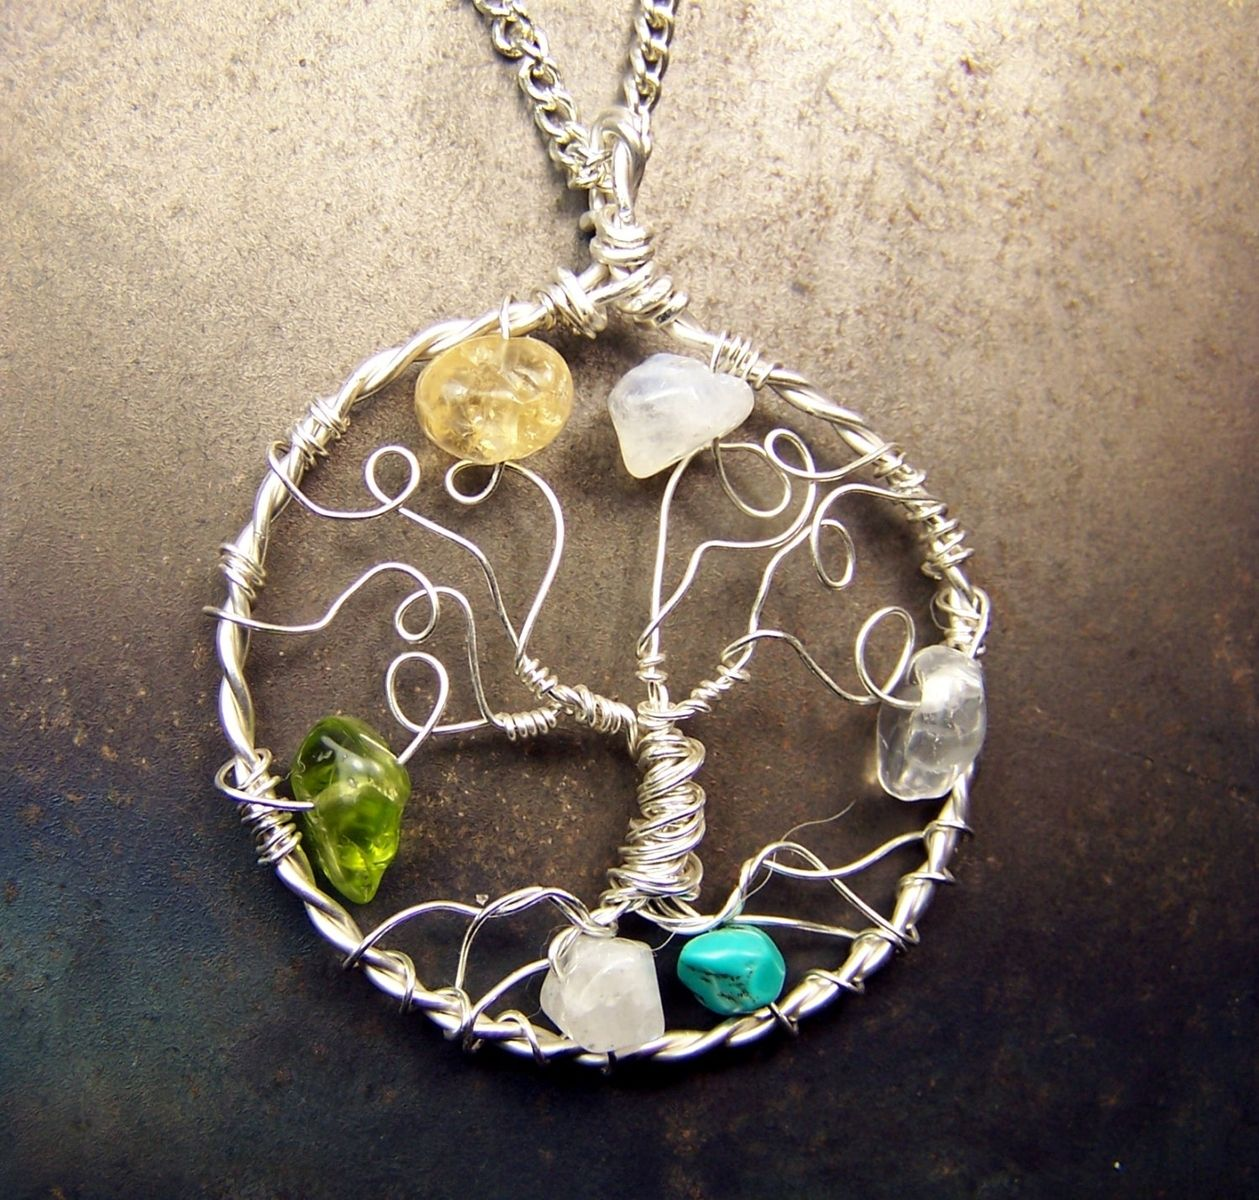 claire s pendant stone mood necklace tree cord